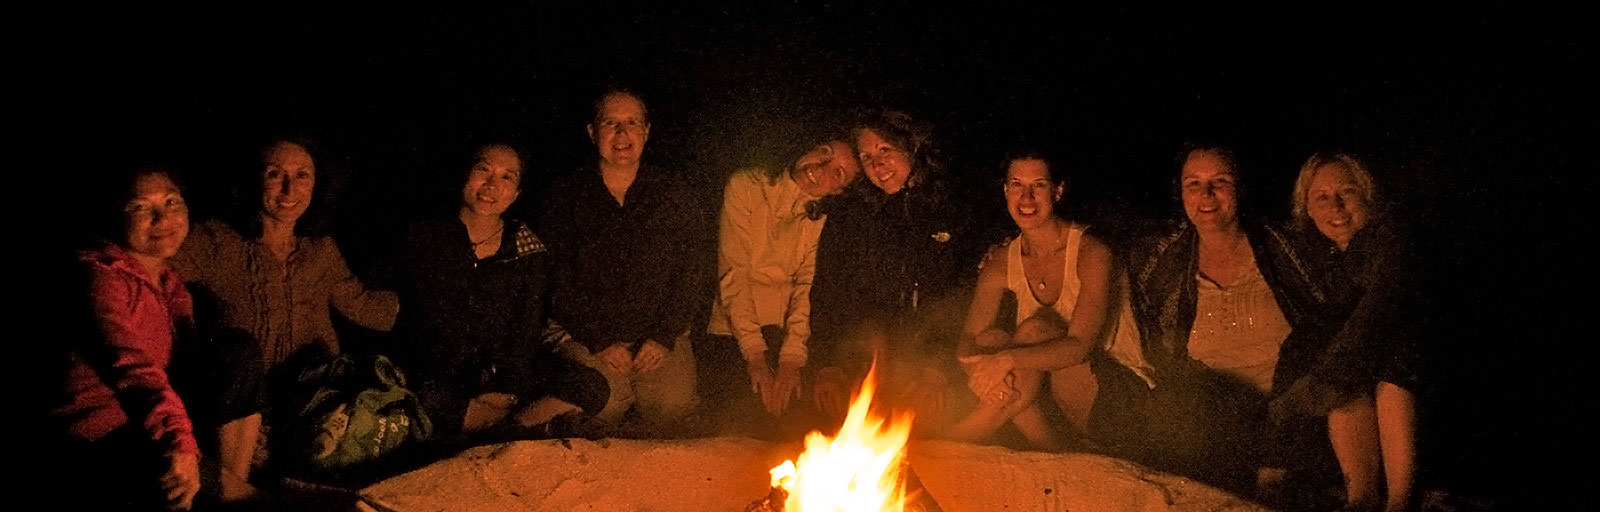 Mexico Yoga Retreats: Beach Bonfire